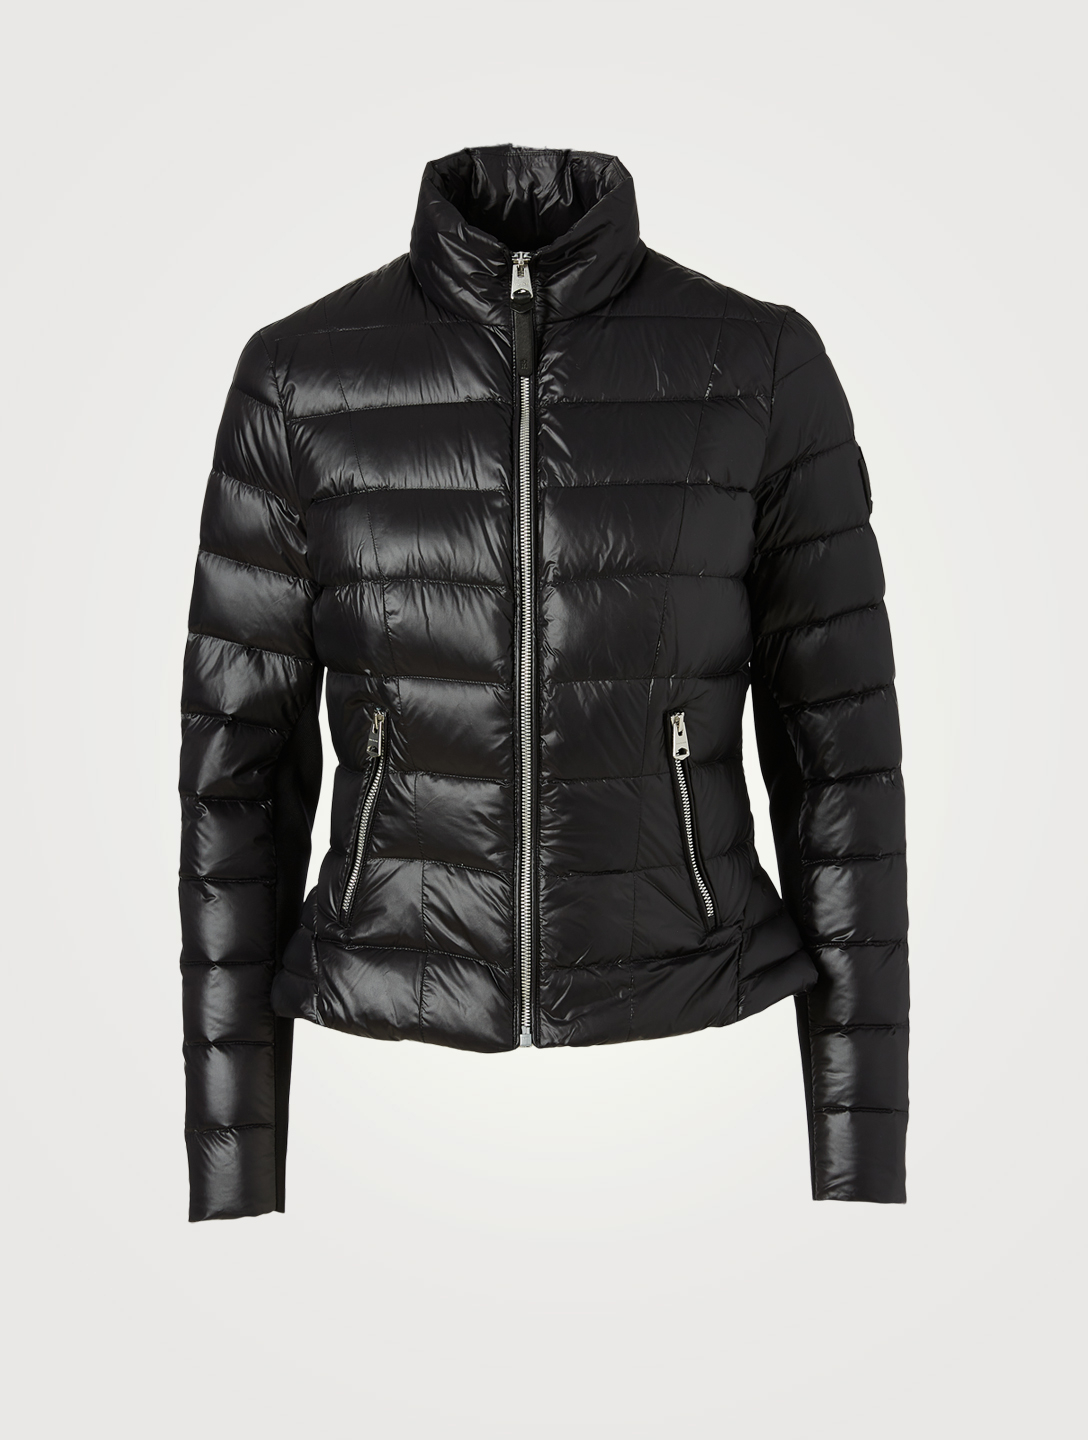 MACKAGE Reema Peplum Down Jacket Women's Black